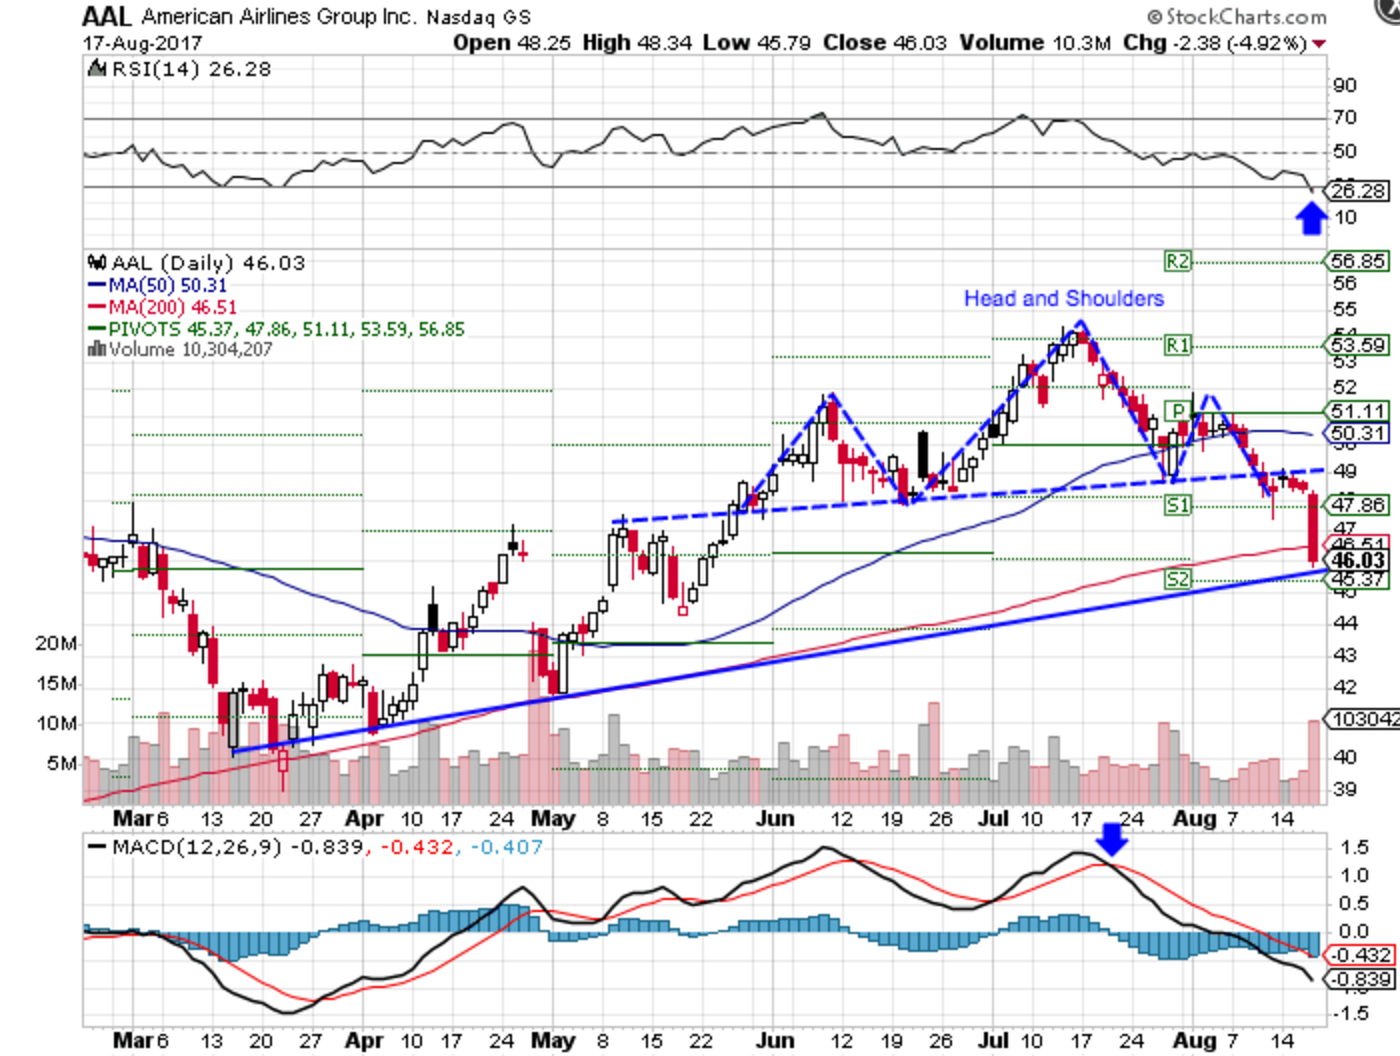 Technical chart showing the performance of American Airlines Group Inc. (AAL) stock